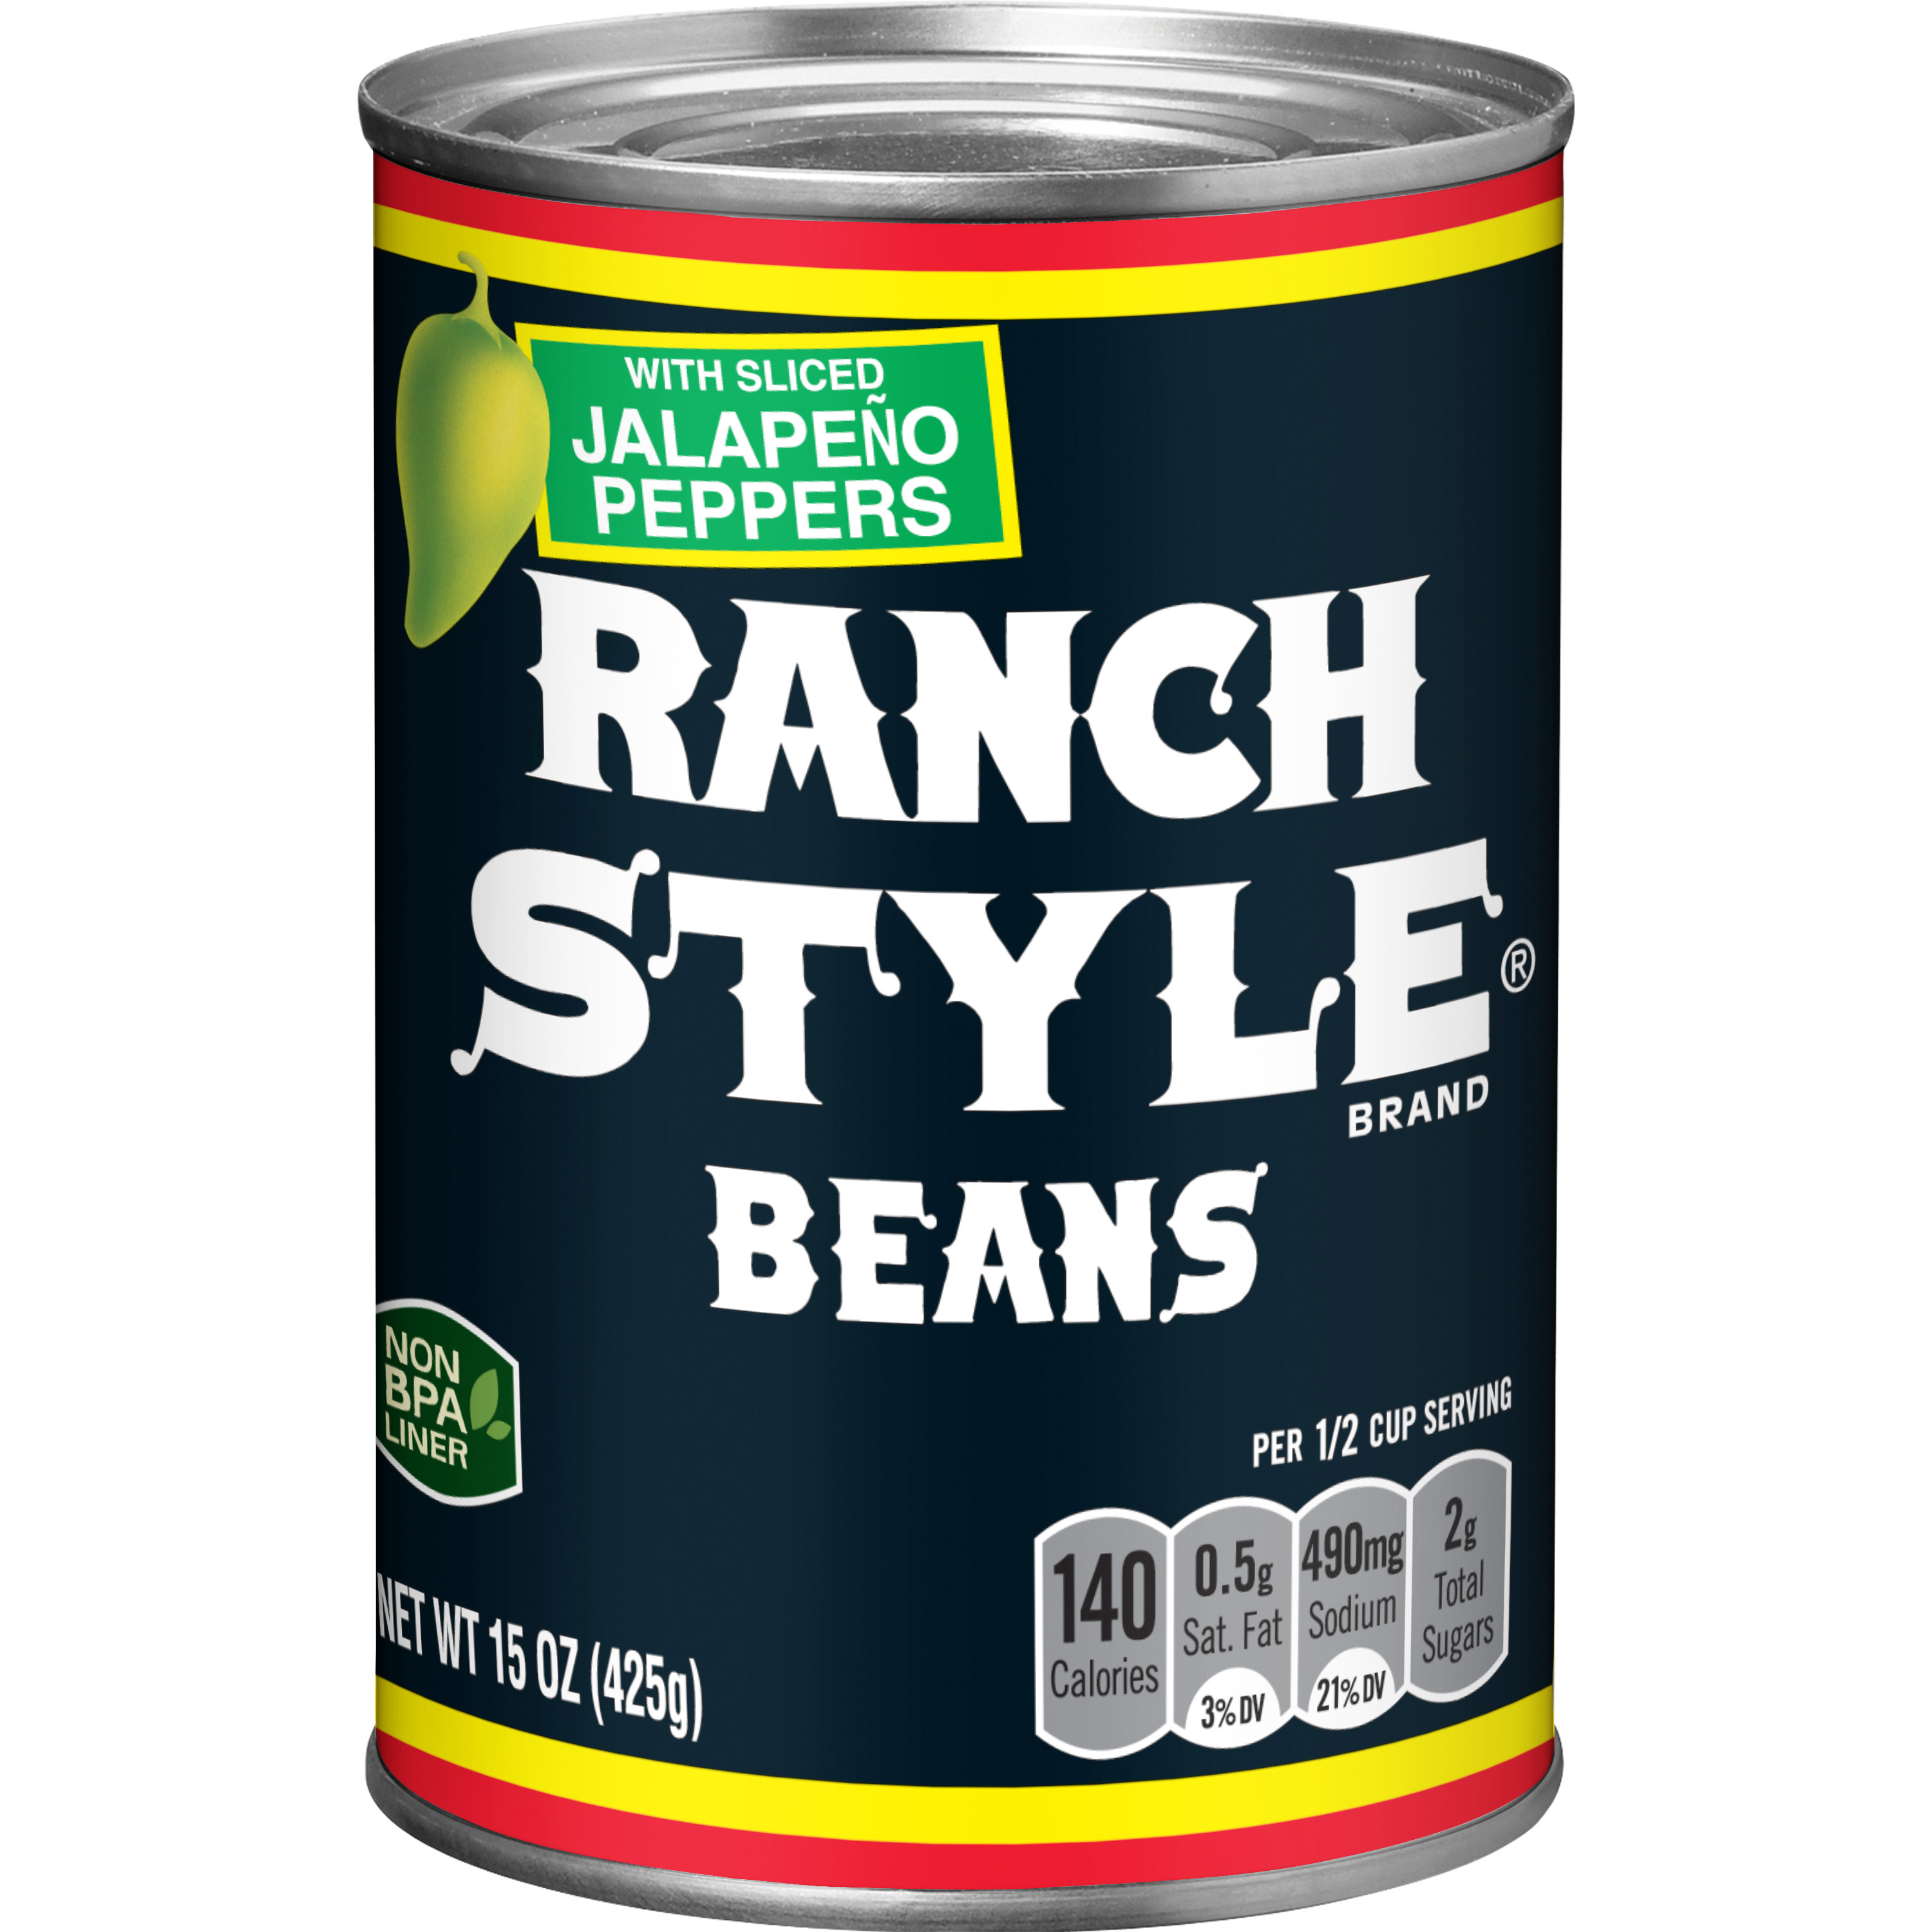 (6 Pack) Ranch Style Beans with Jalapeño Peppers, 15 Ounce